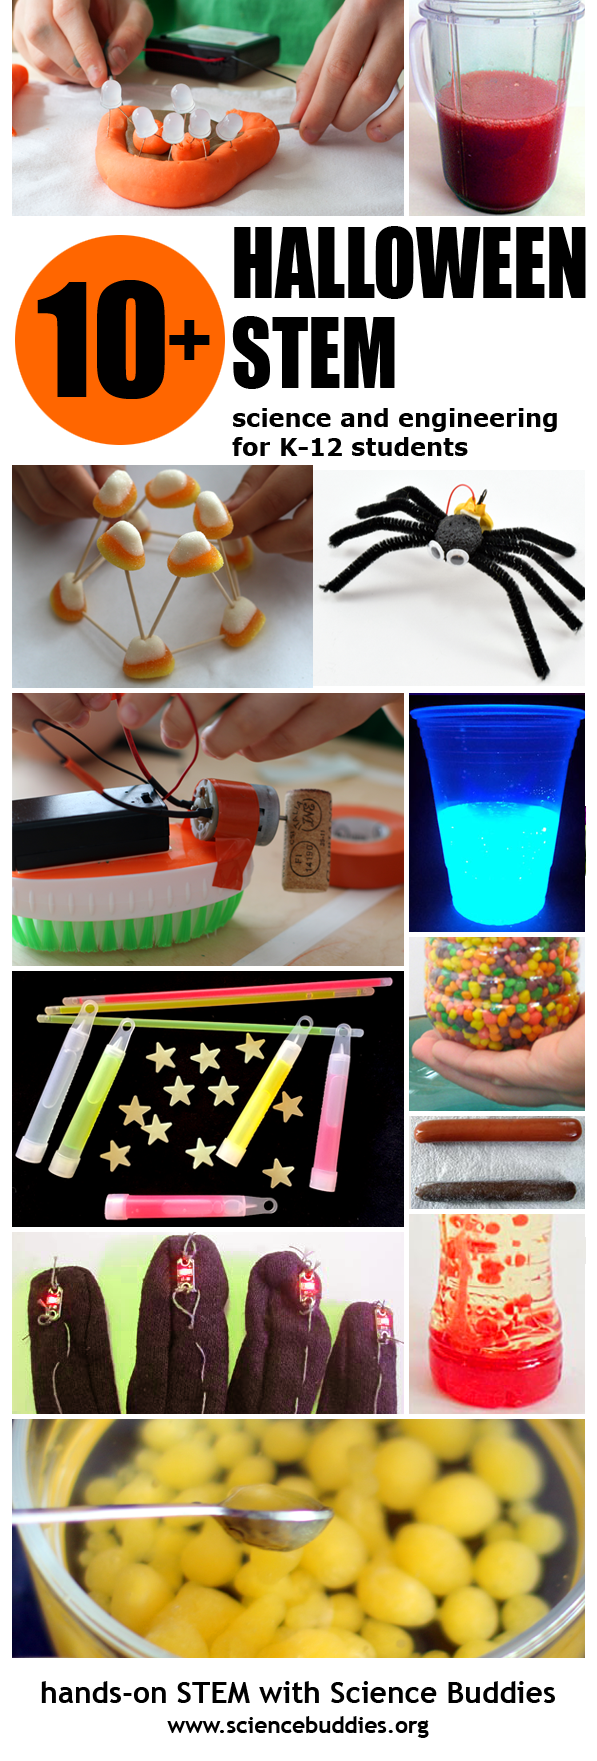 Spooktacular Halloween Science / Hands-on Halloween STEM Roundup